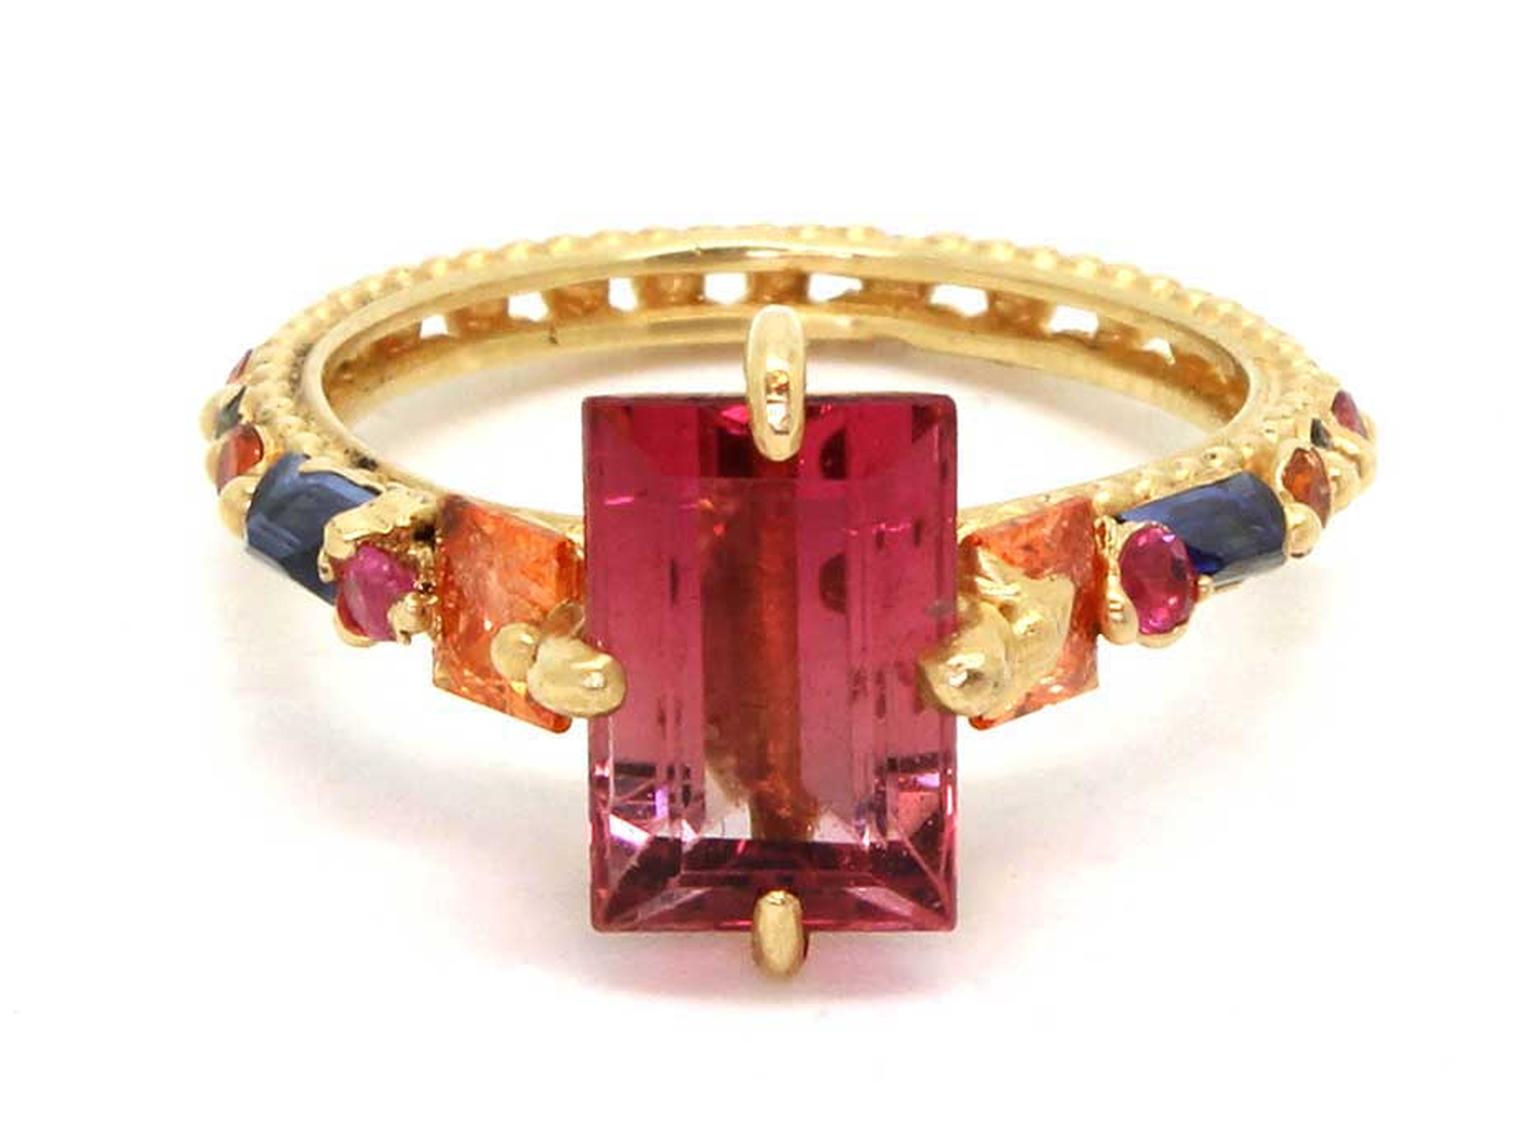 Polly Wales faded pink tourmaline ring with orange, pink and blue sapphires.